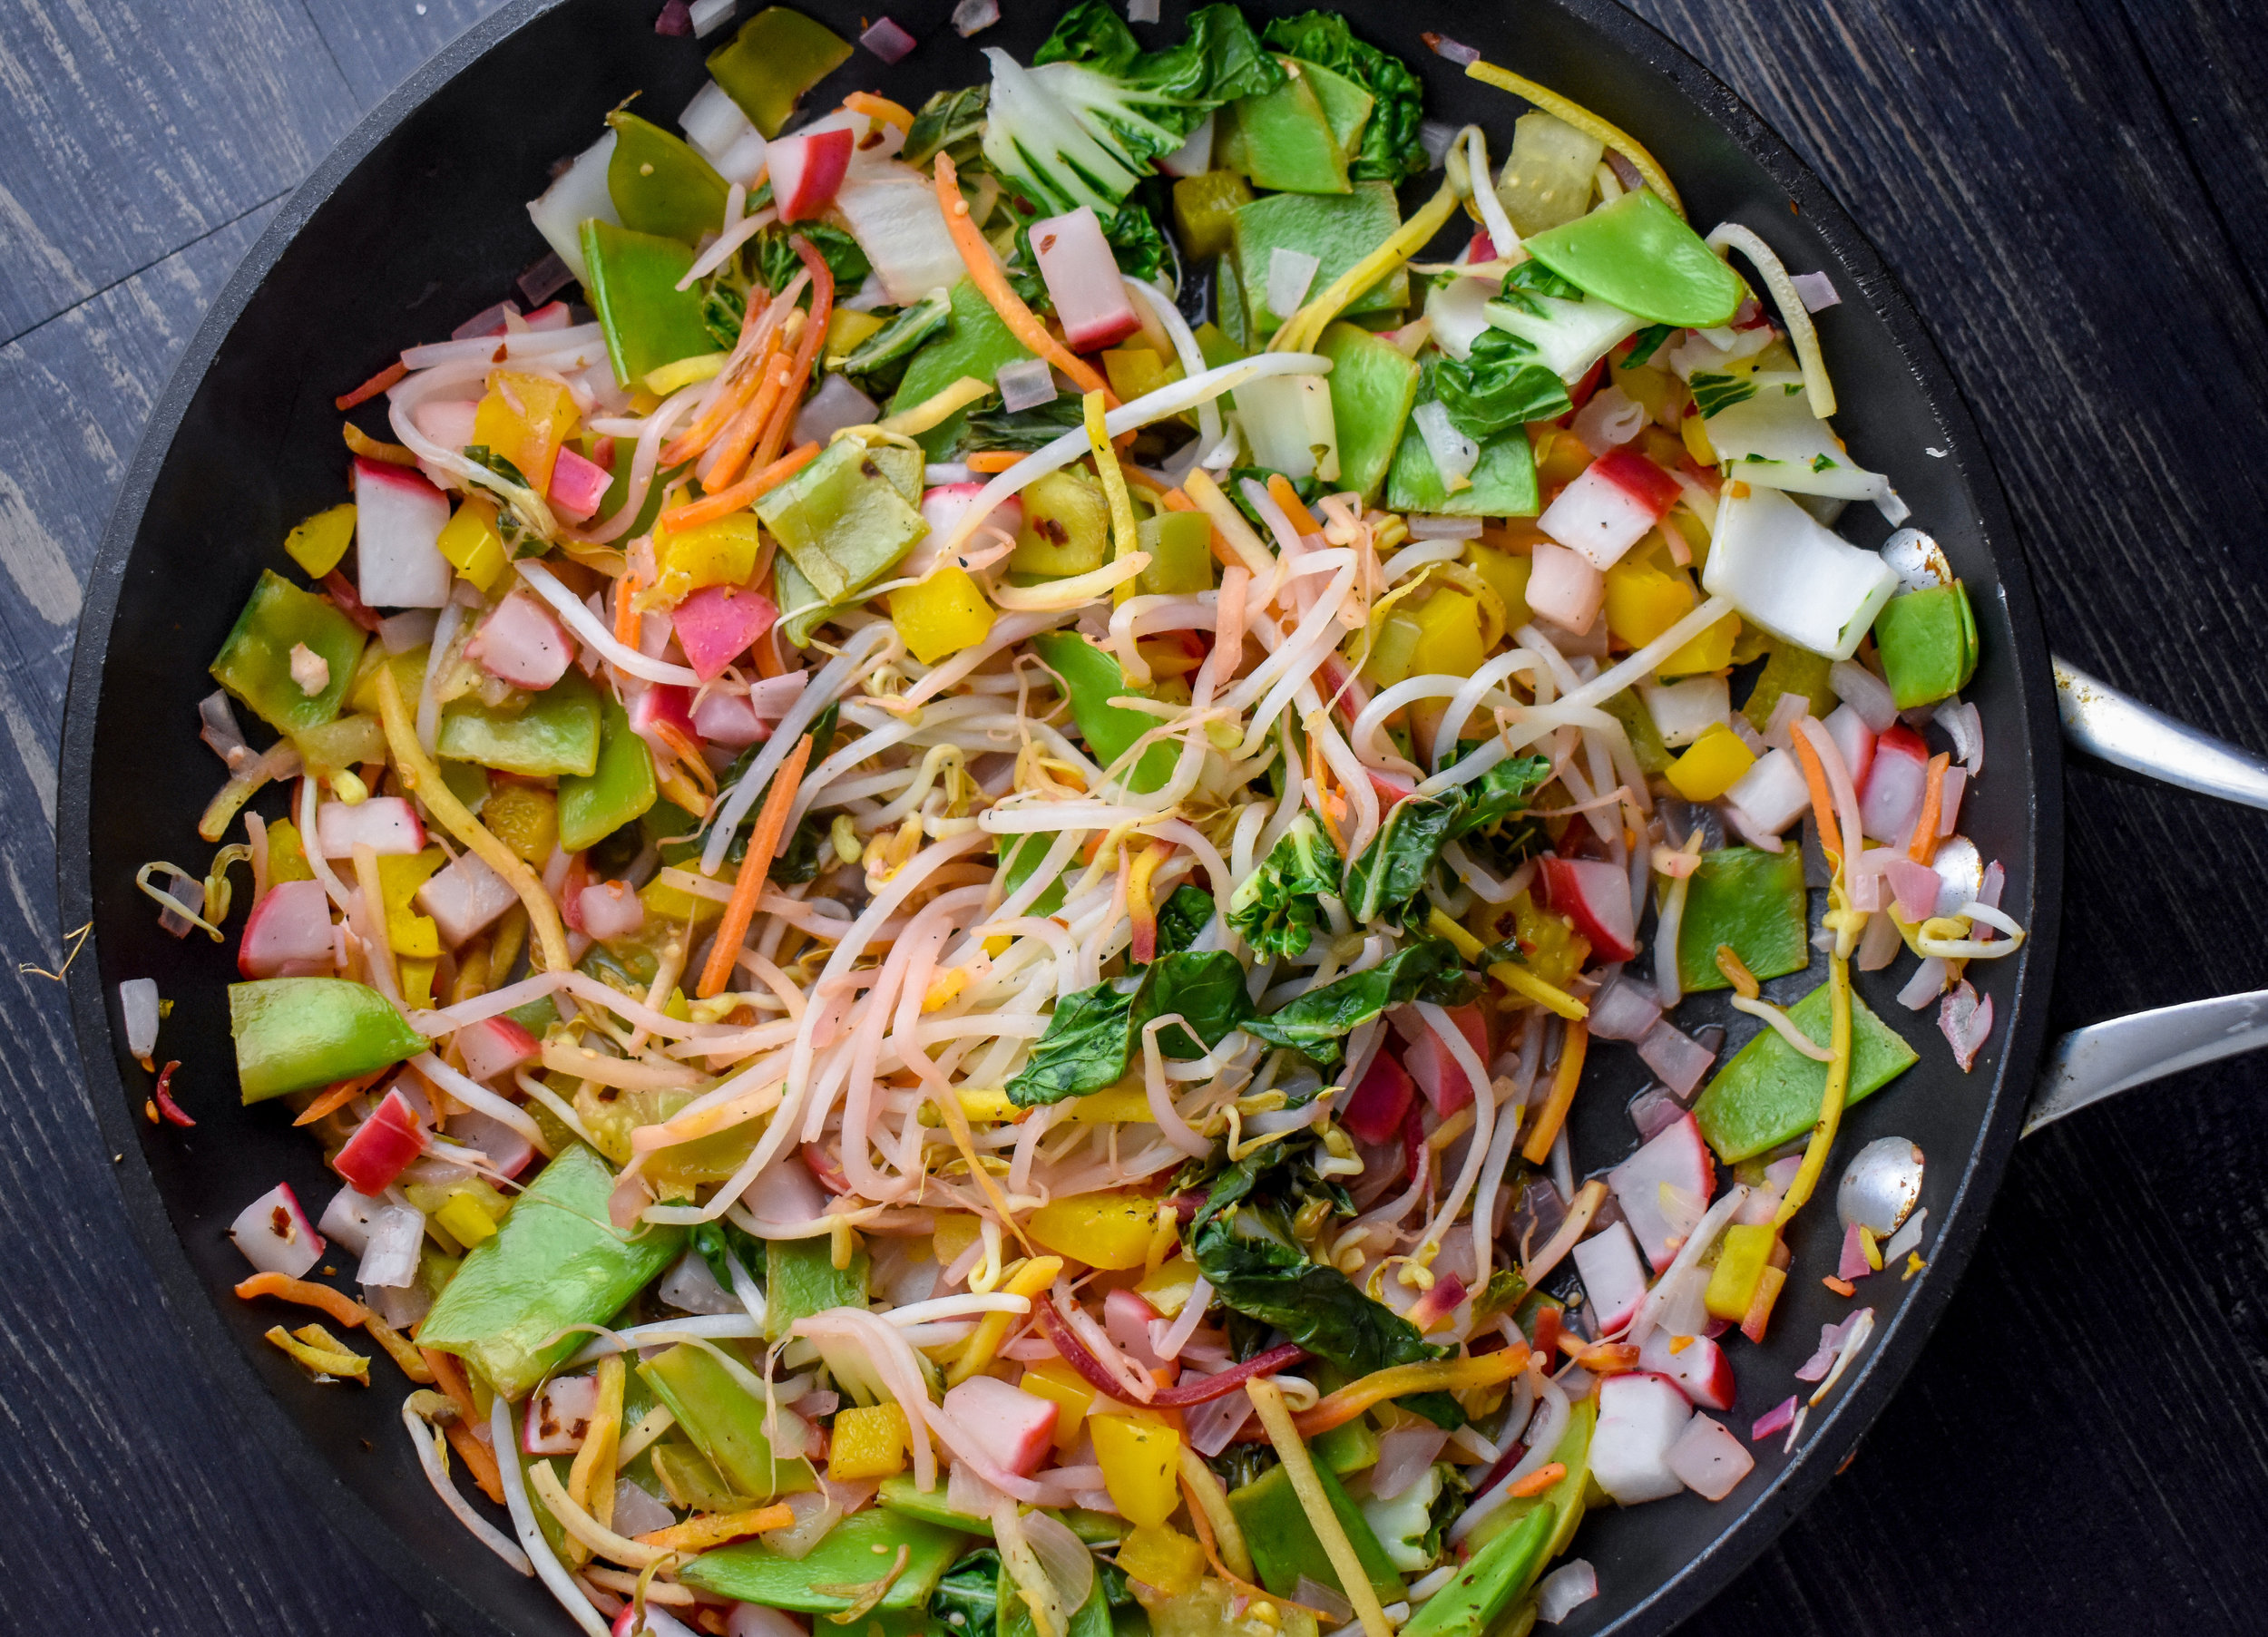 3. After potatoes are done, set them aside and add veggies to the same pan with a bit of sesame oil (1/2 tbl). Cook stirring frequently for 4-5 minutes to soften up veggies and warm them. I like to cook them until the bok choy is starting to wilt down.